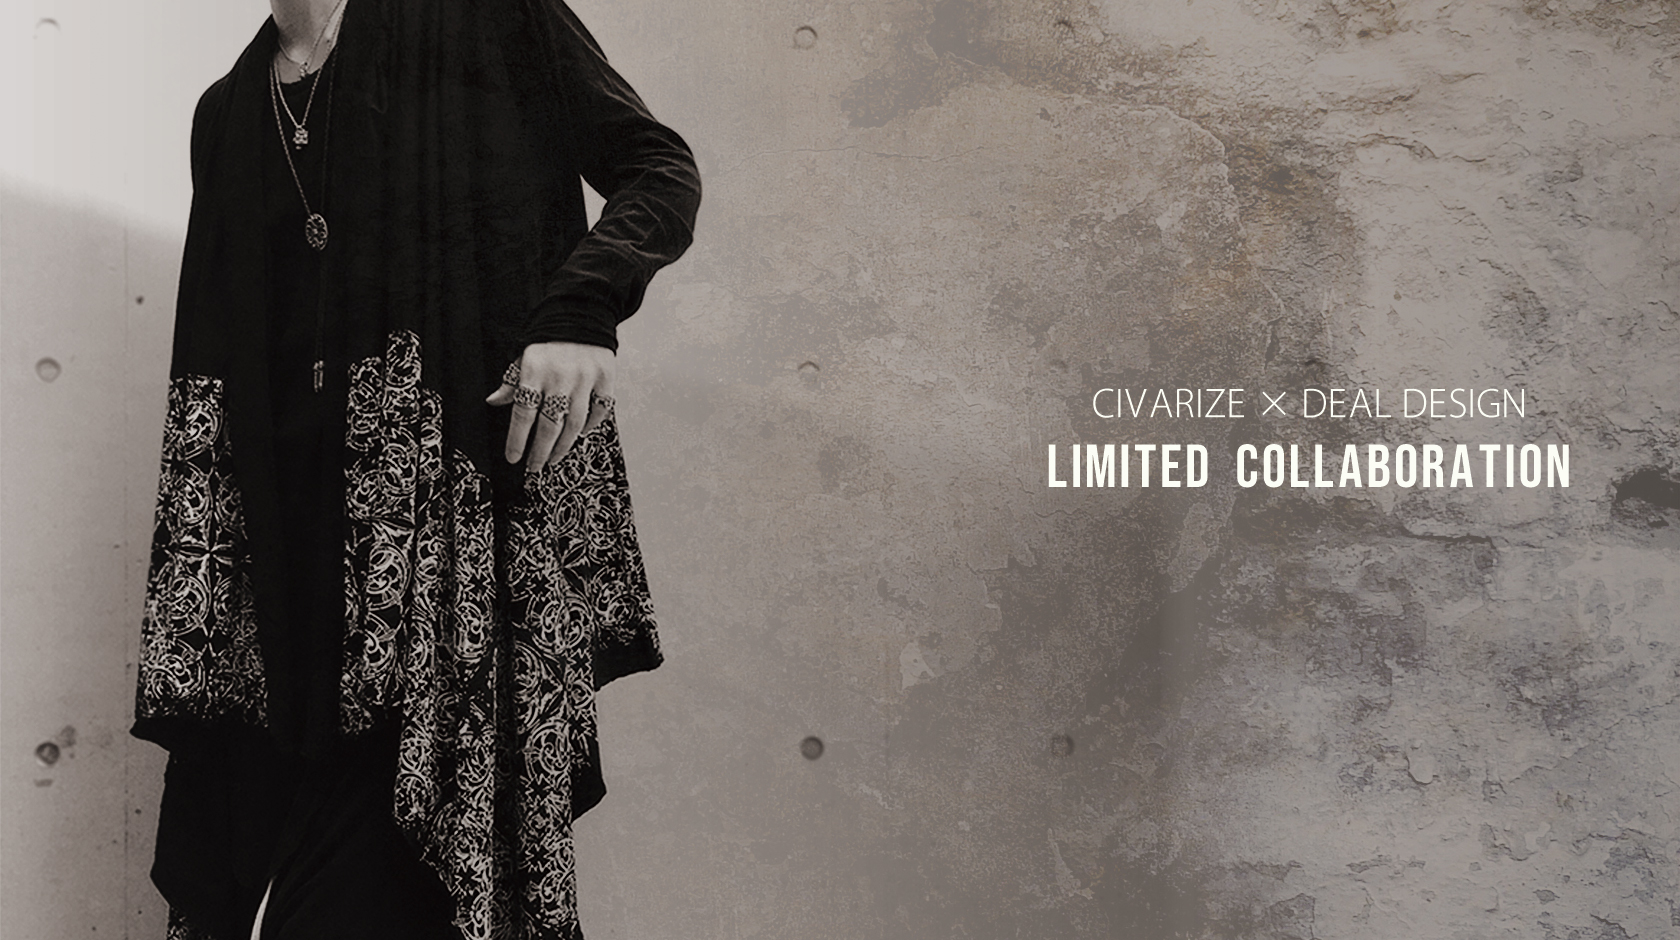 DEALDESIGN×CIVARIZE LIMITED COLLABORATION